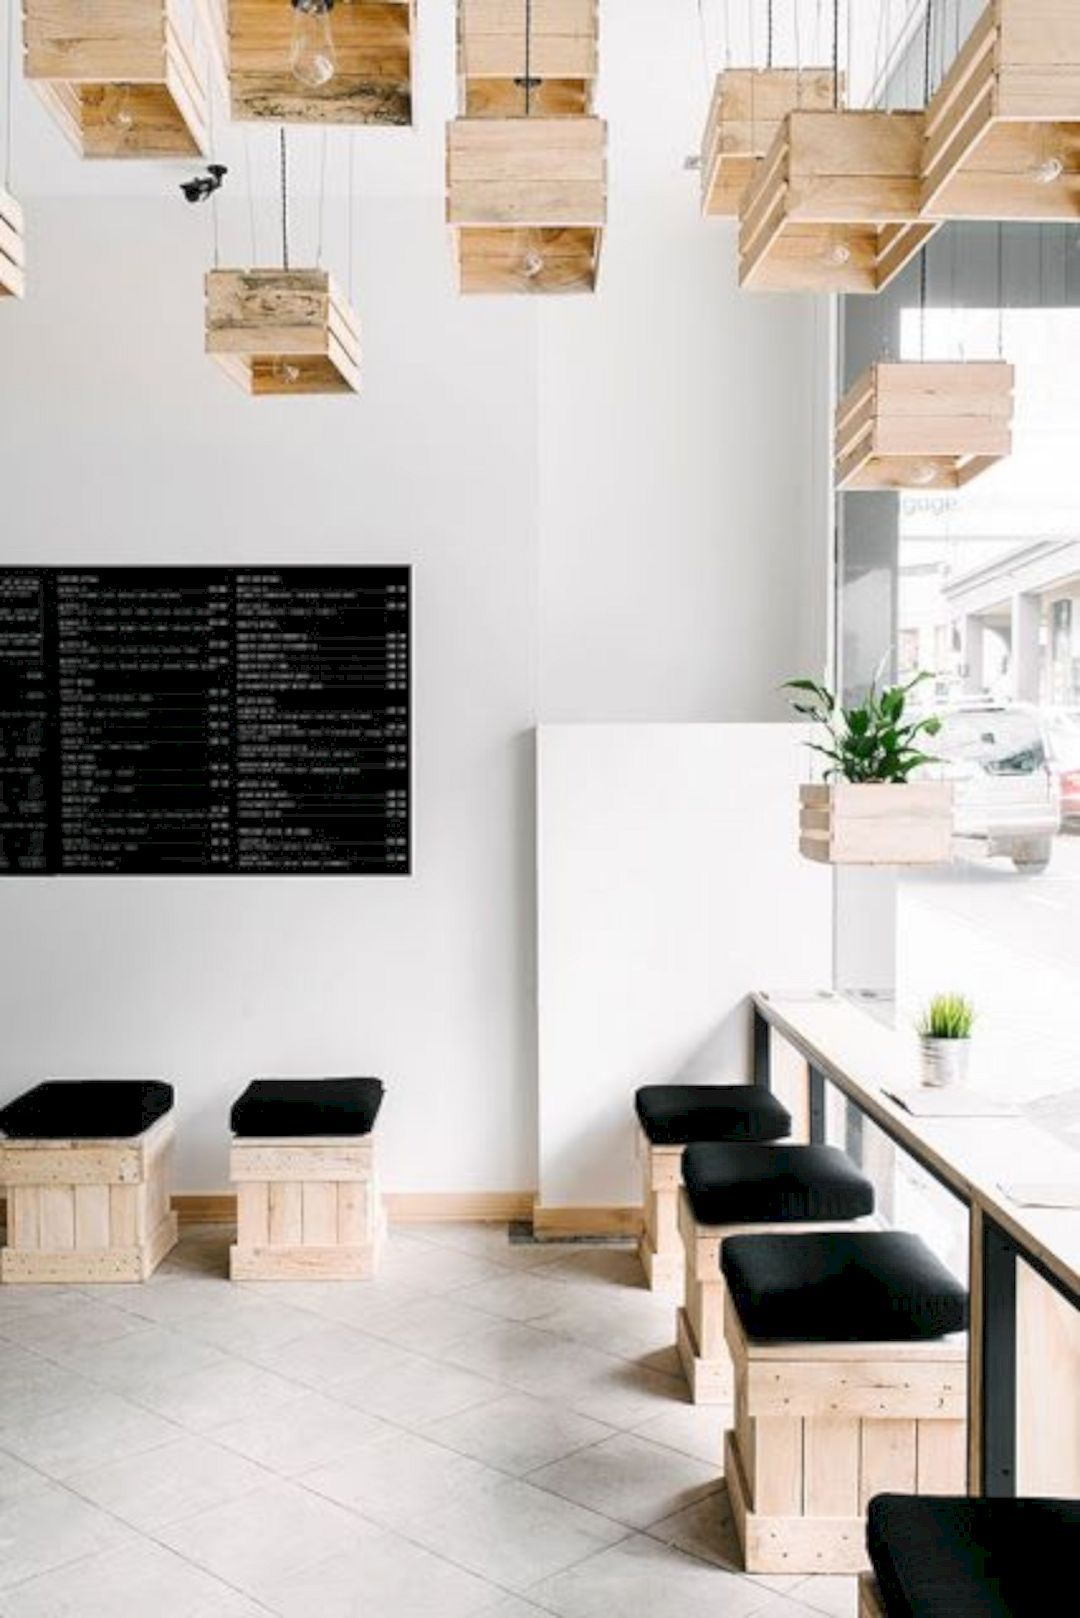 15 Great Interior Design Ideas for Small Restaurant | Small ...